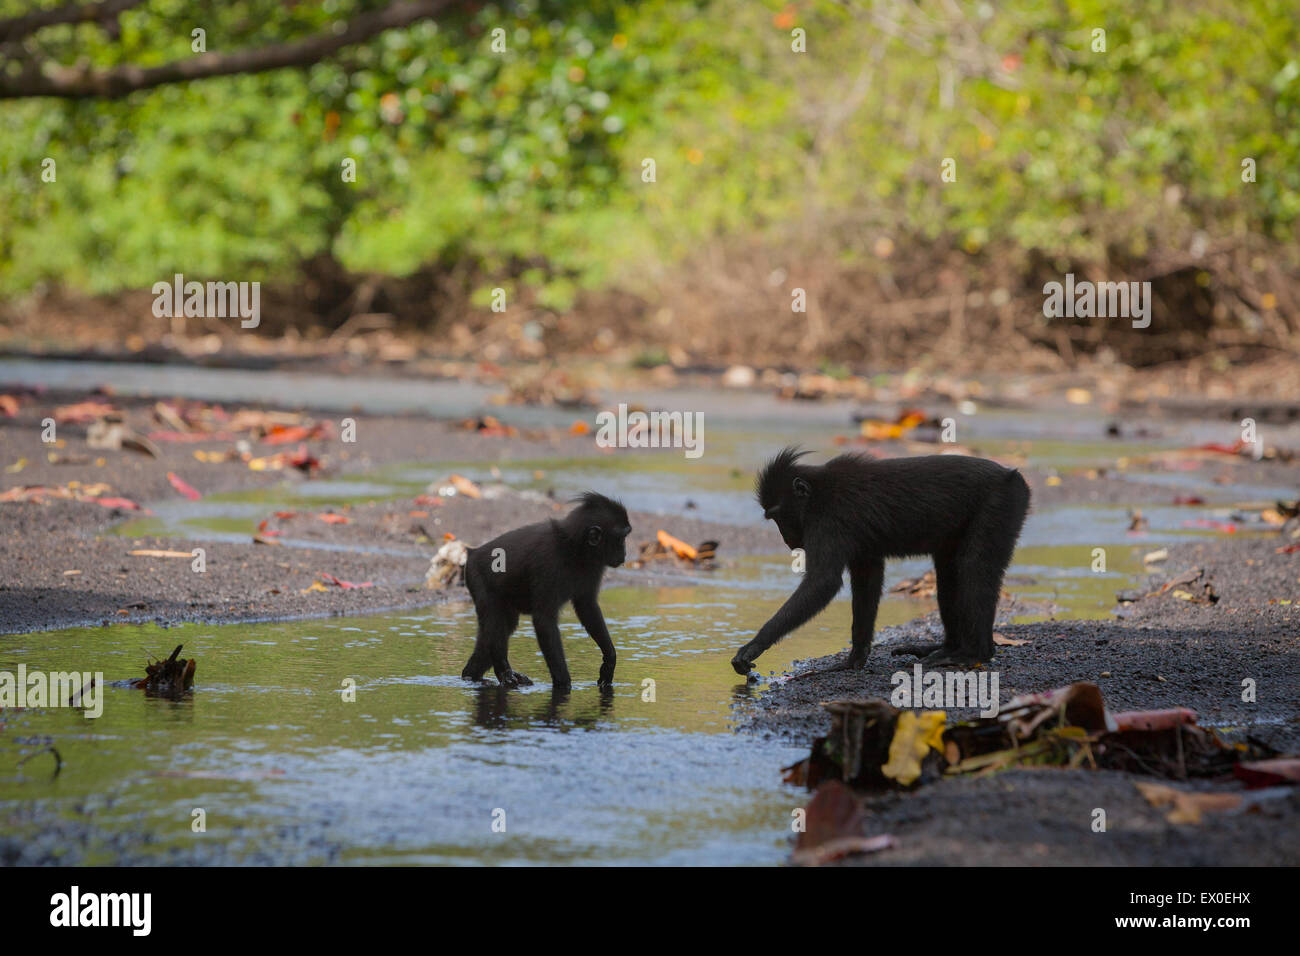 Social activity of Sulawesi black-crested macaque (Macaca nigra). - Stock Image